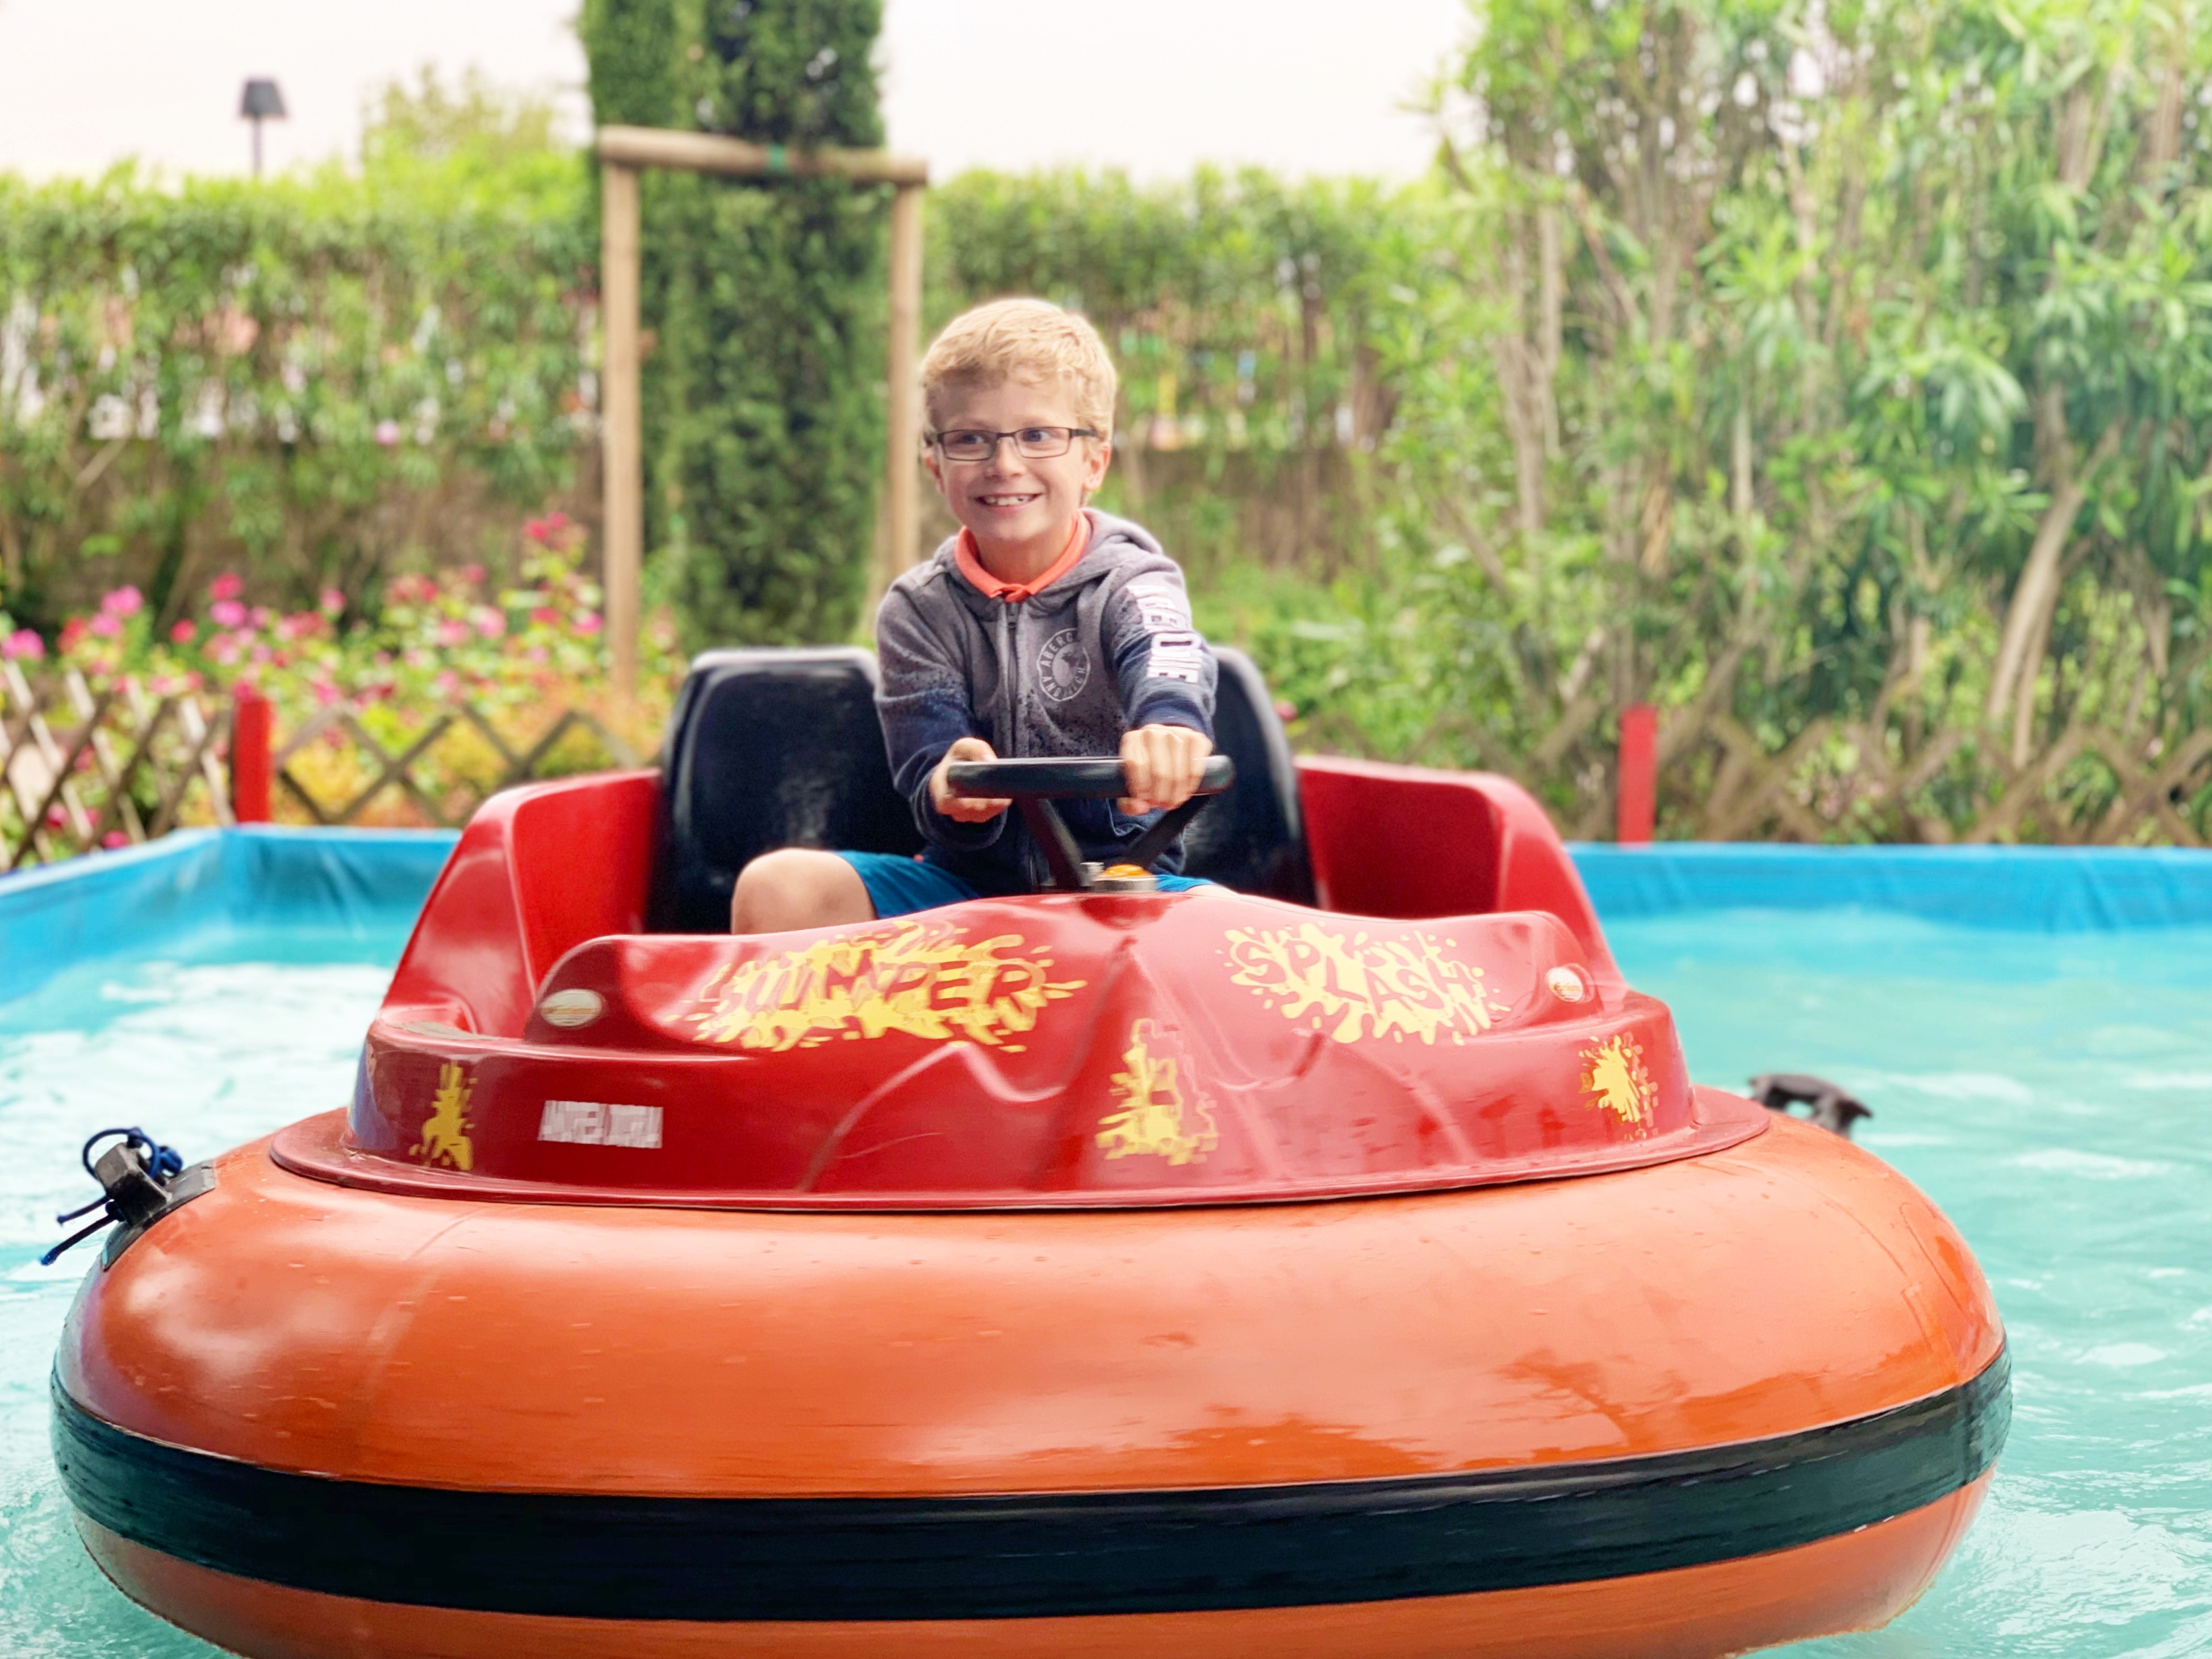 A boy riding a water bumper car in a Eurocamp holiday park